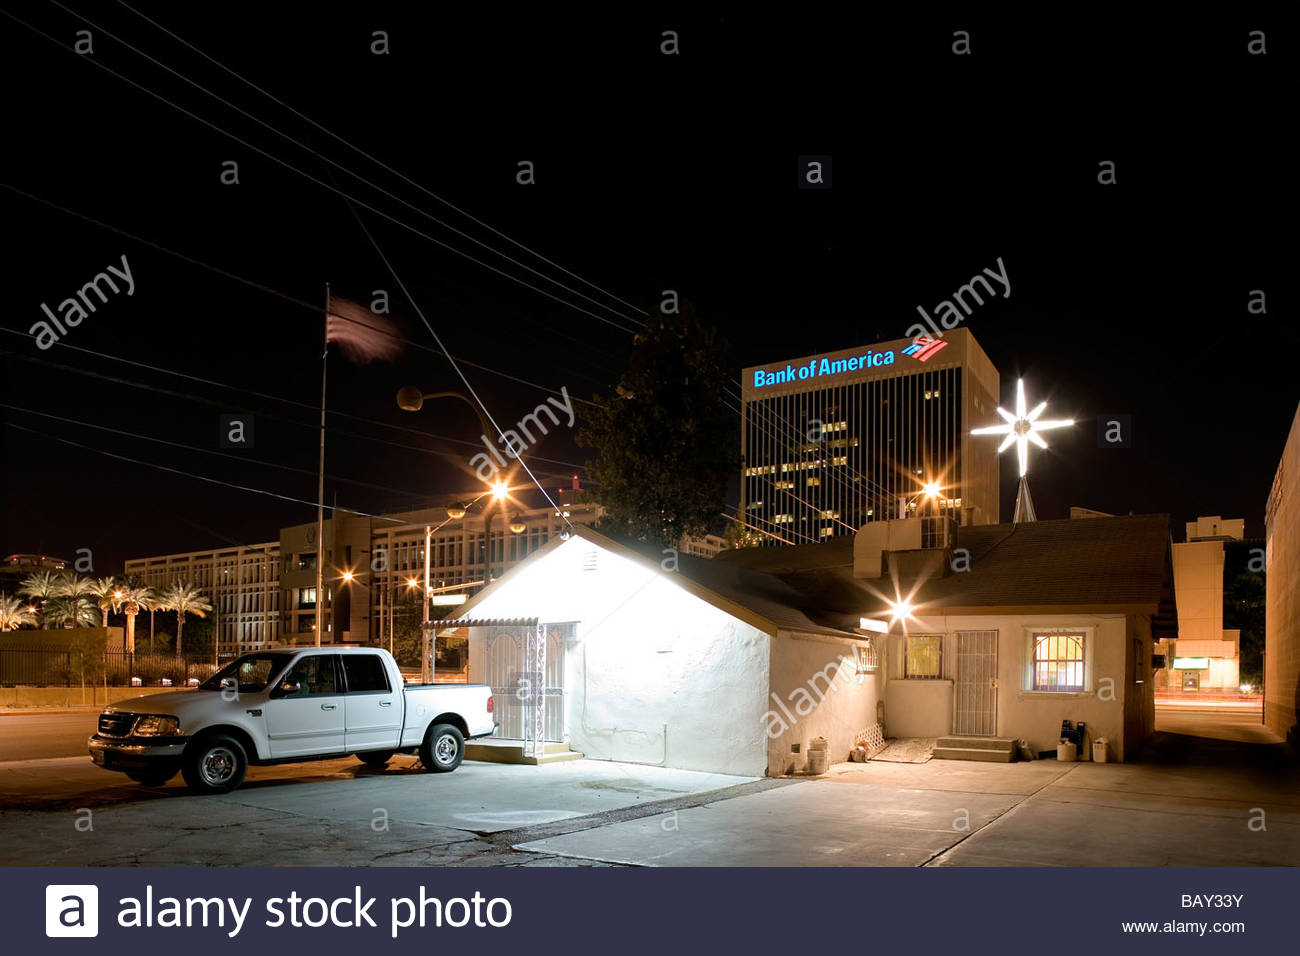 Wedding Chapel On Las Vegas Boulevard The Strip Bank Of America In Background Downtown Nevada USA